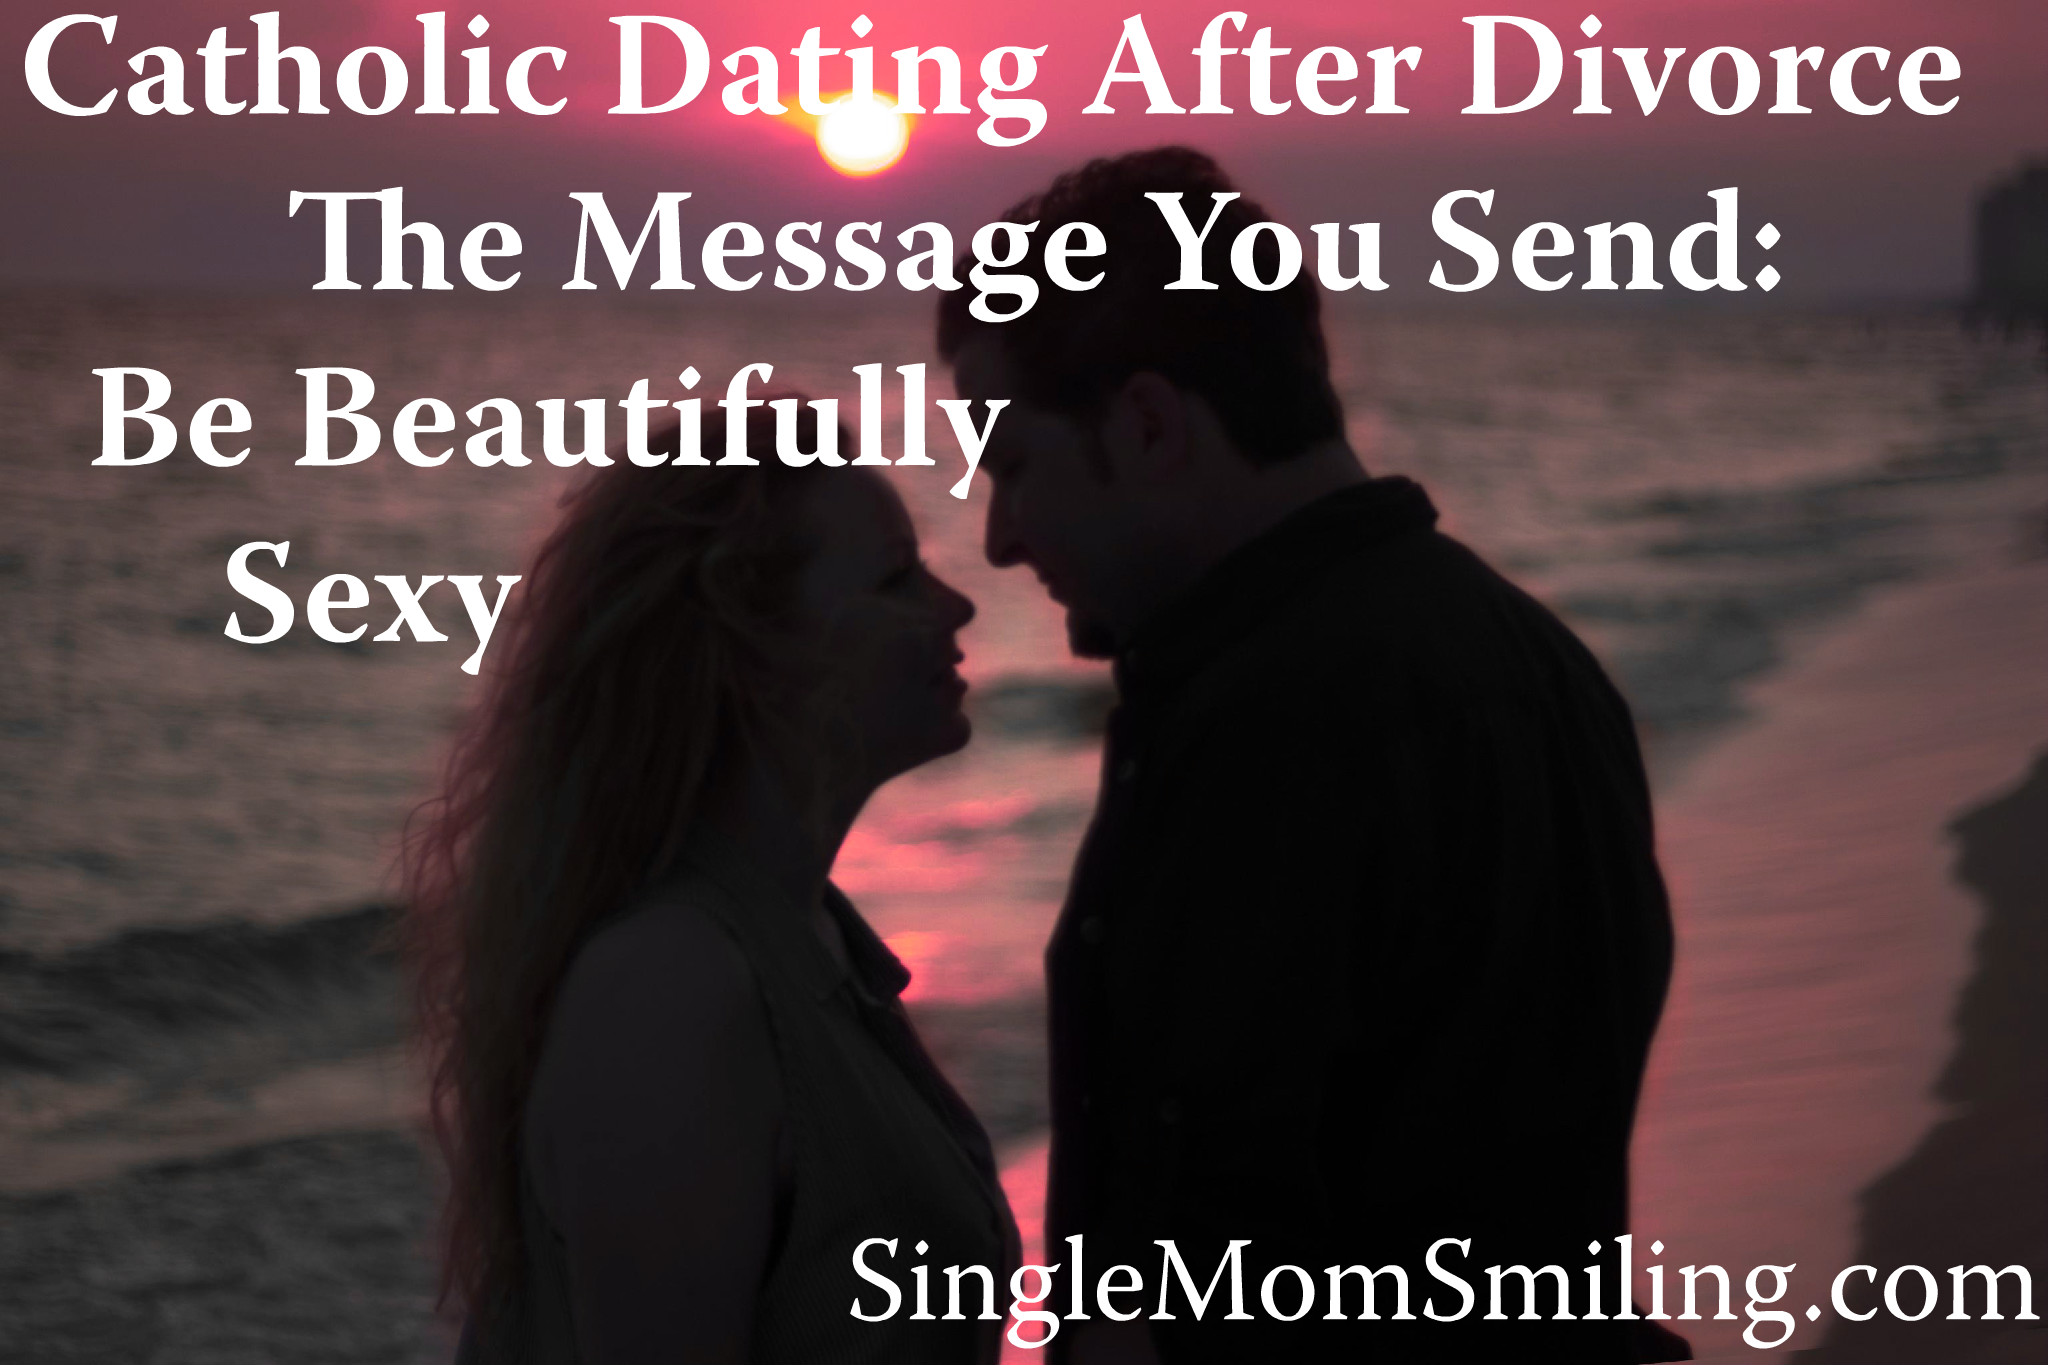 divorced catholic and dating